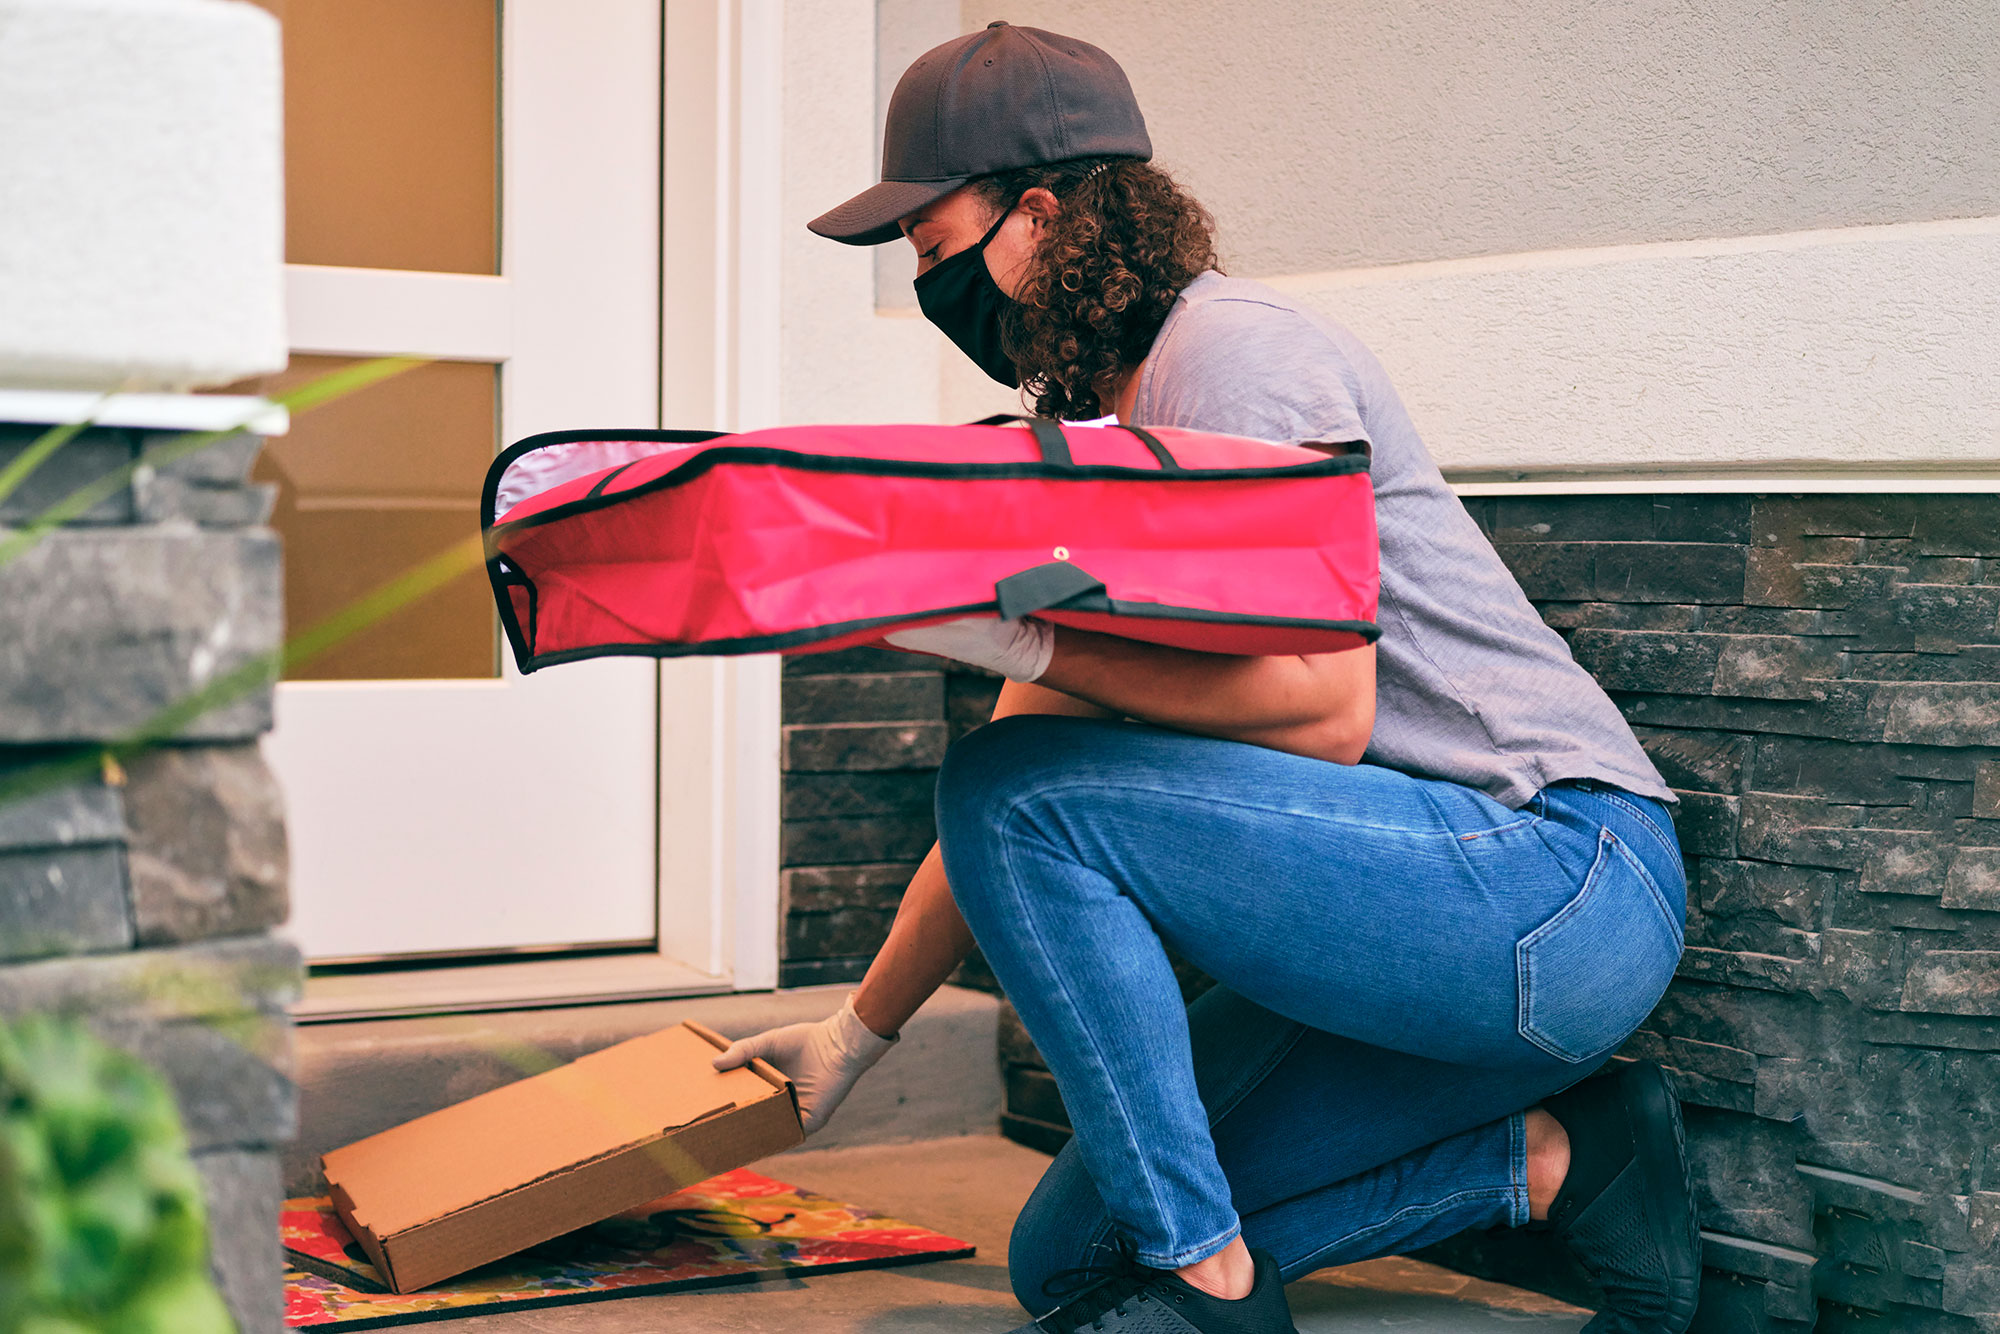 Pizza delivery woman dropping off a pizza